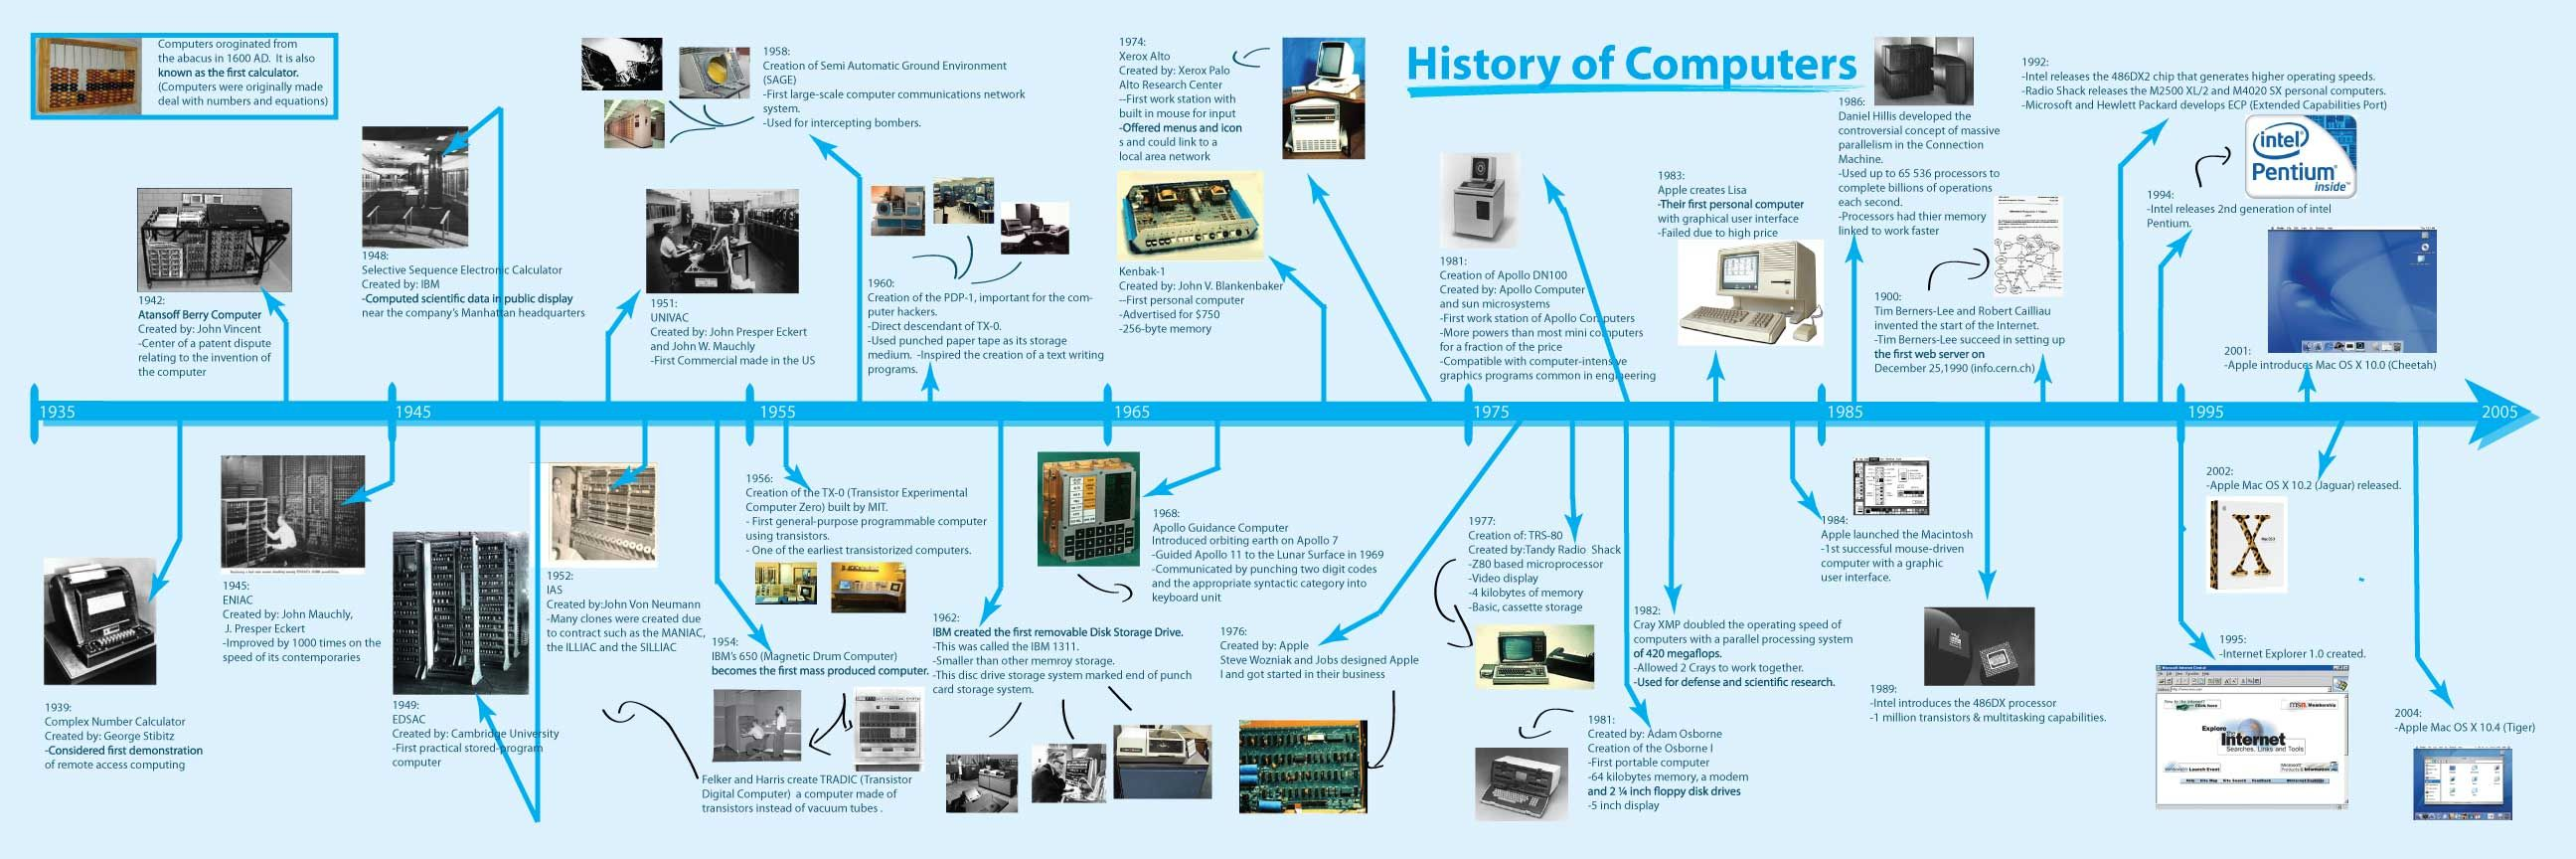 the evolution of multimedia technologies since the 1980s Even in a time of accelerated technology advancements, innovations  was  designed in 1974, though it did not open up until the 1980s  ibm pc:  computers as a low-cost assemblage of electronic lego parts  adobe flex:  flash development, open-sourced in 2007, for rich  2018 1105 media, inc.